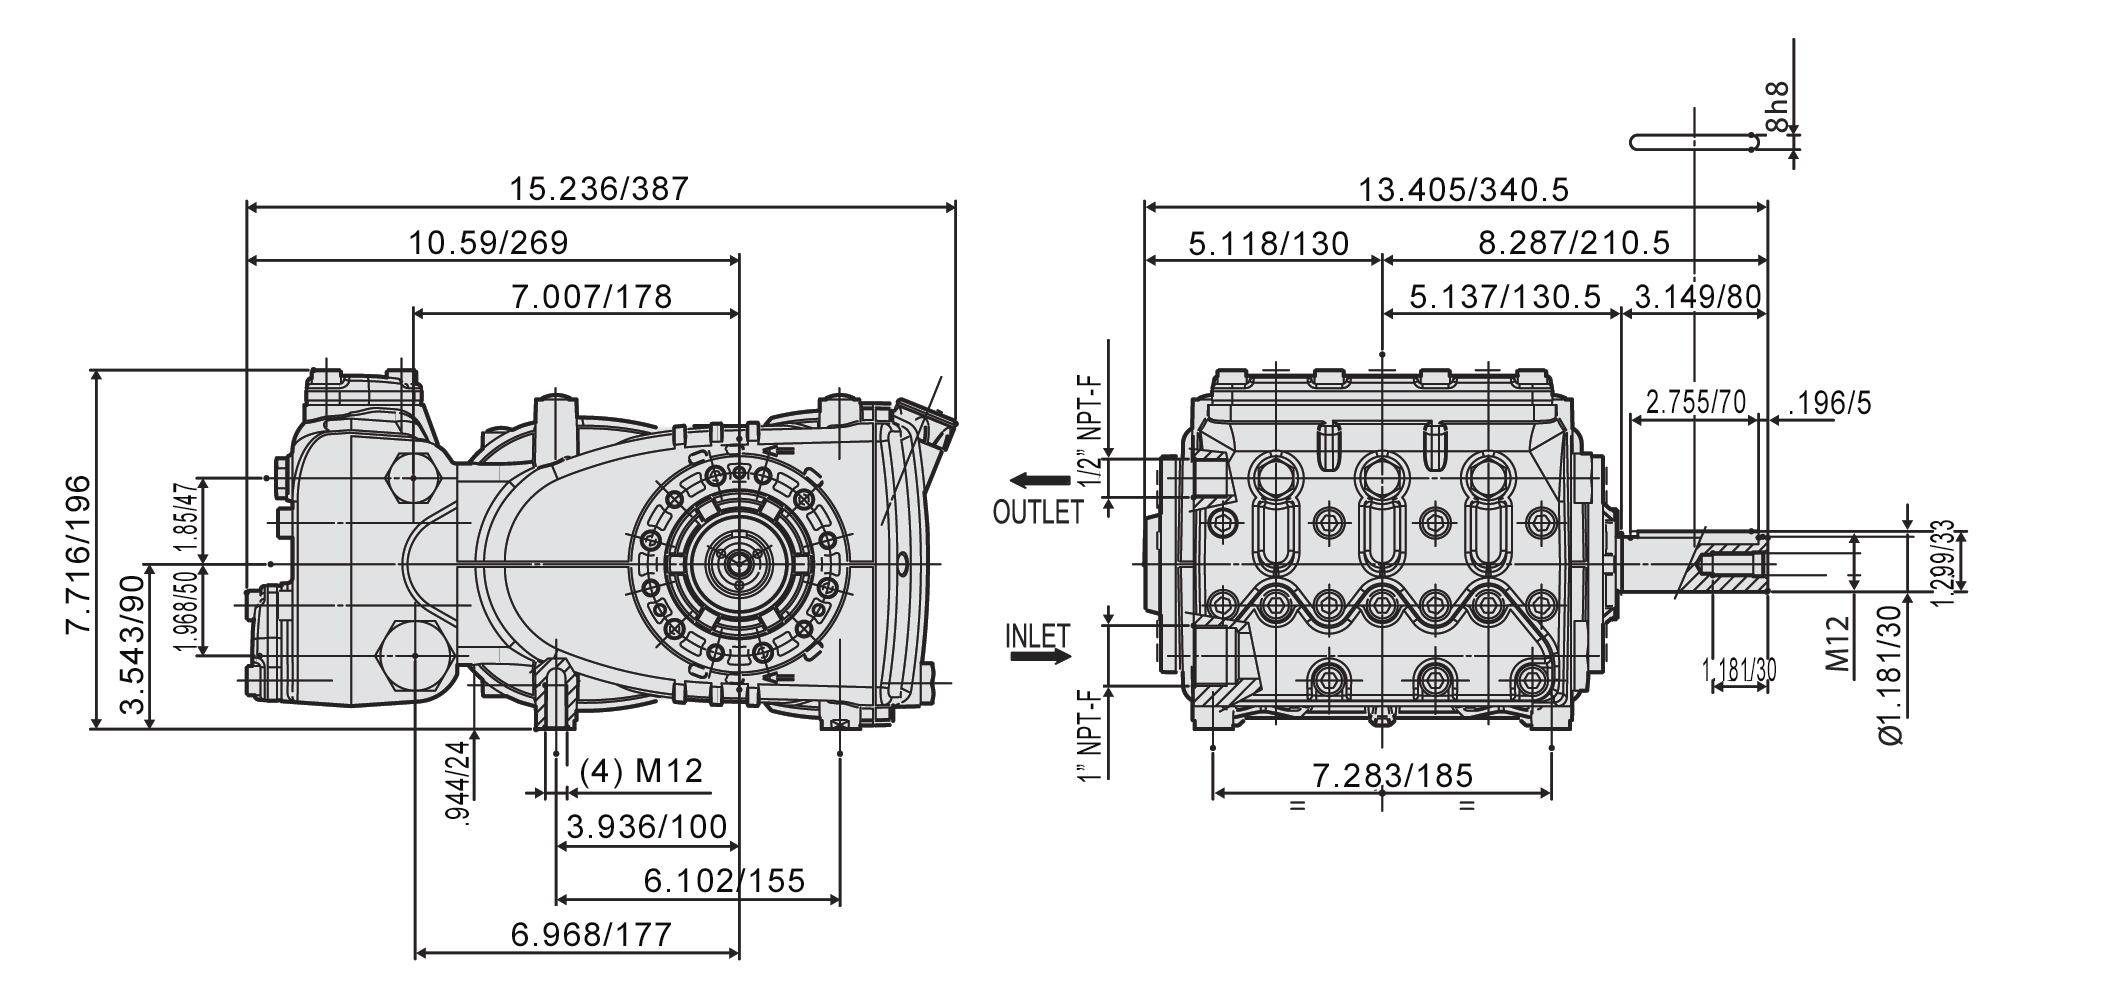 Position Of Parts In Body together with Toyota Prius Engine Diagram as well Emission Control System moreover Hummer H2 Fuse Box furthermore 2005 Toyota Sequoia Fuse Box Diagram. on toyota sequoia fuel pump location